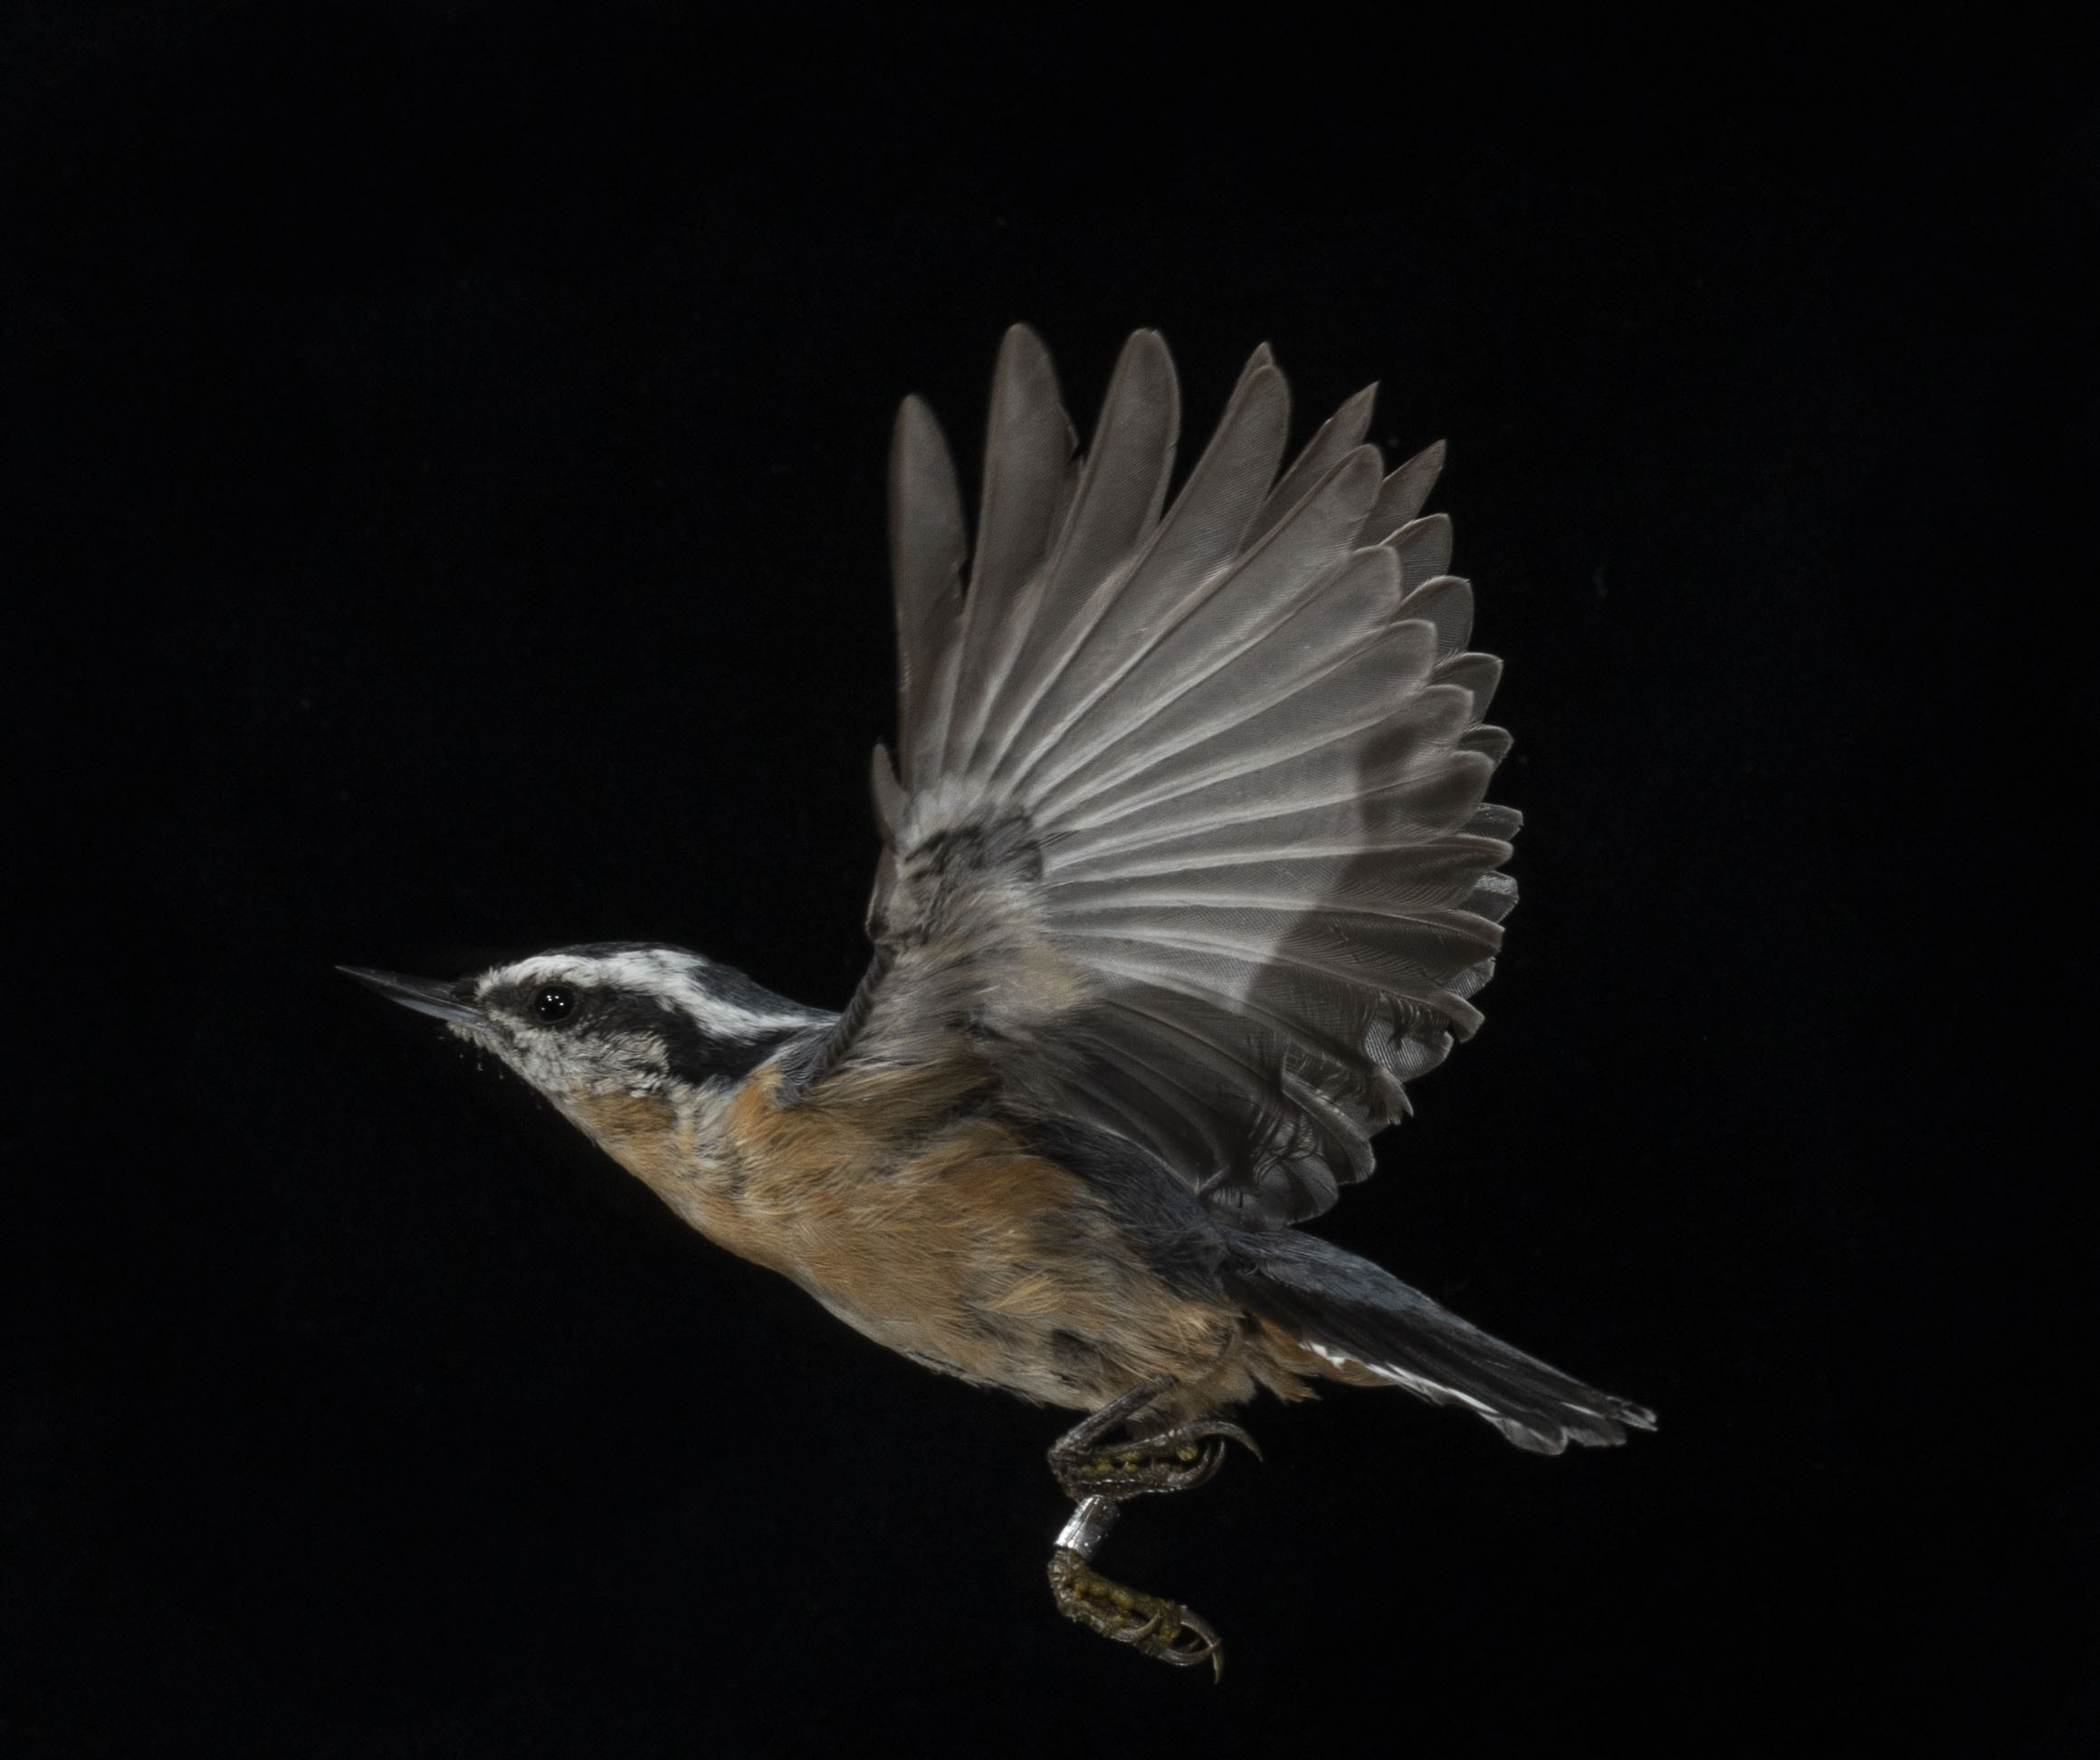 A Red-breasted Nuthatch in flight with a black background